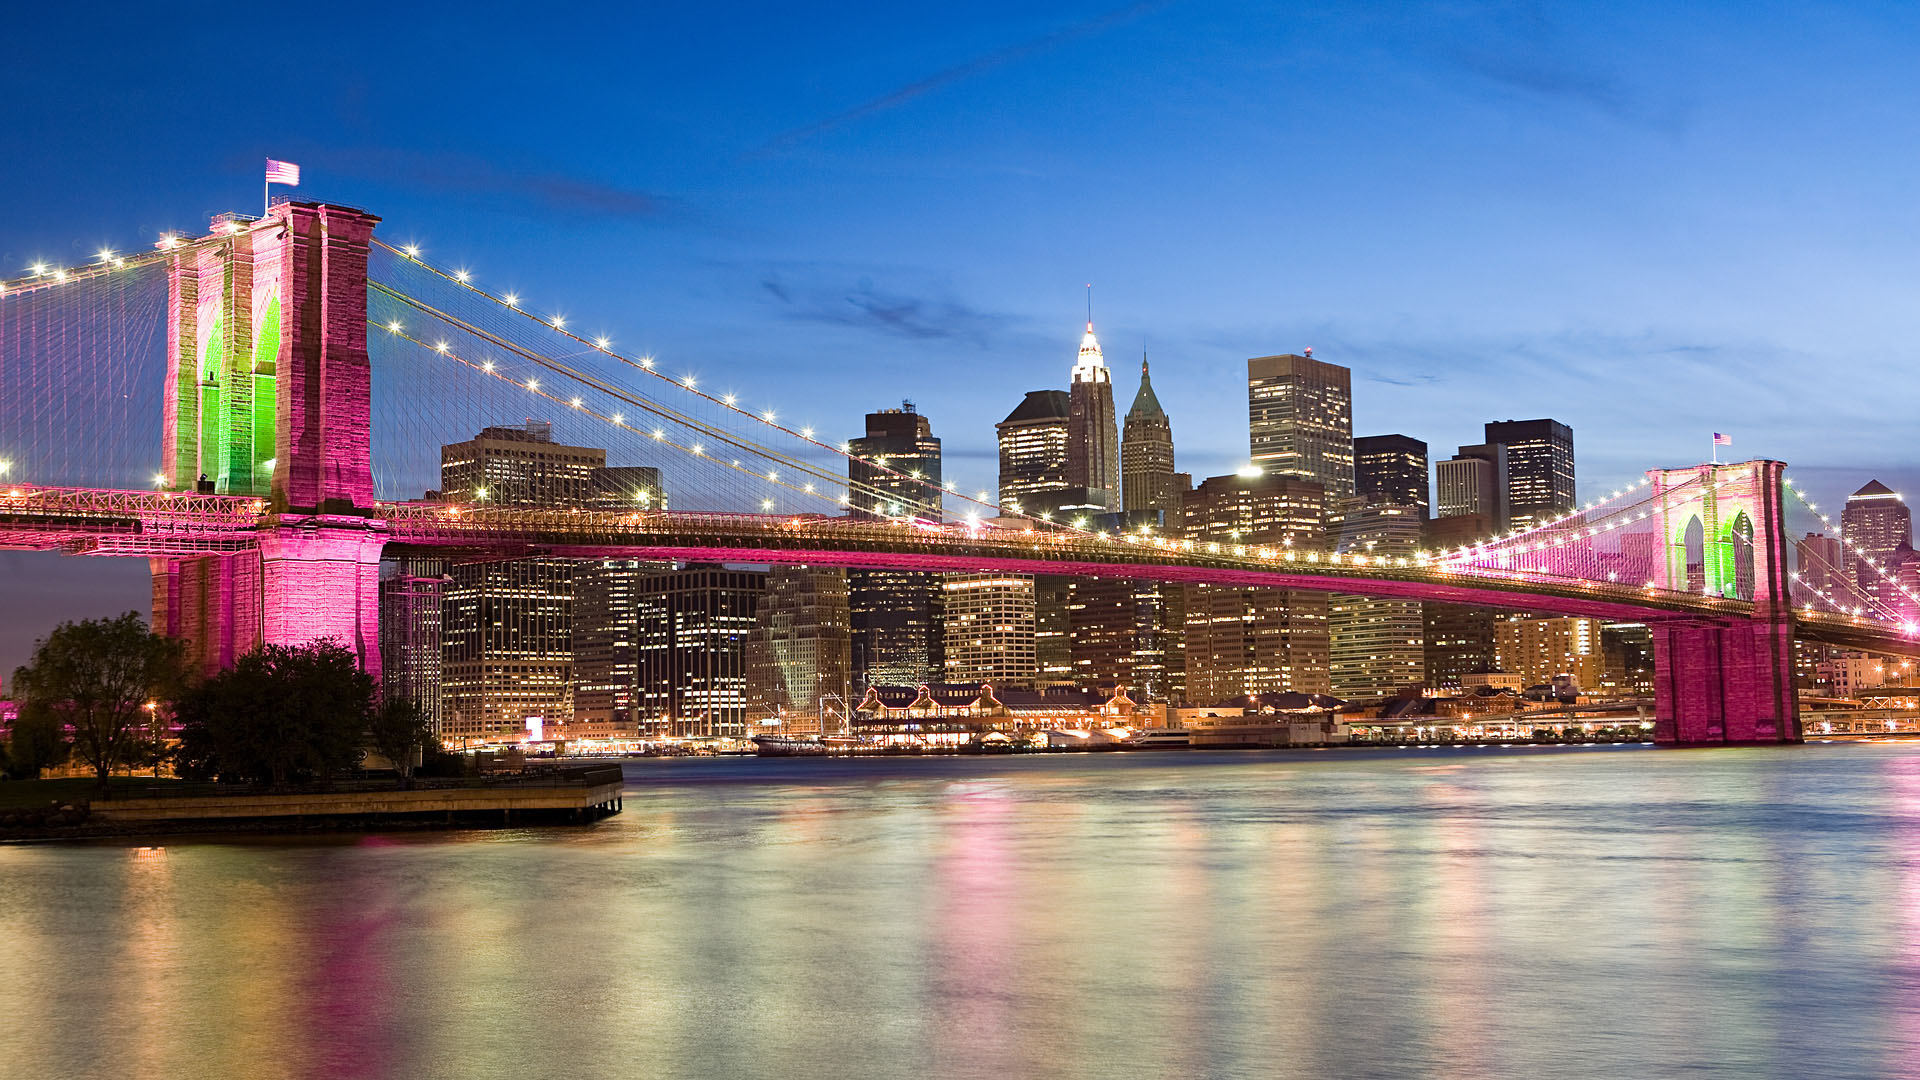 Brooklyn Bridge New Background HD Wallpapers | HD Wallapers for Free